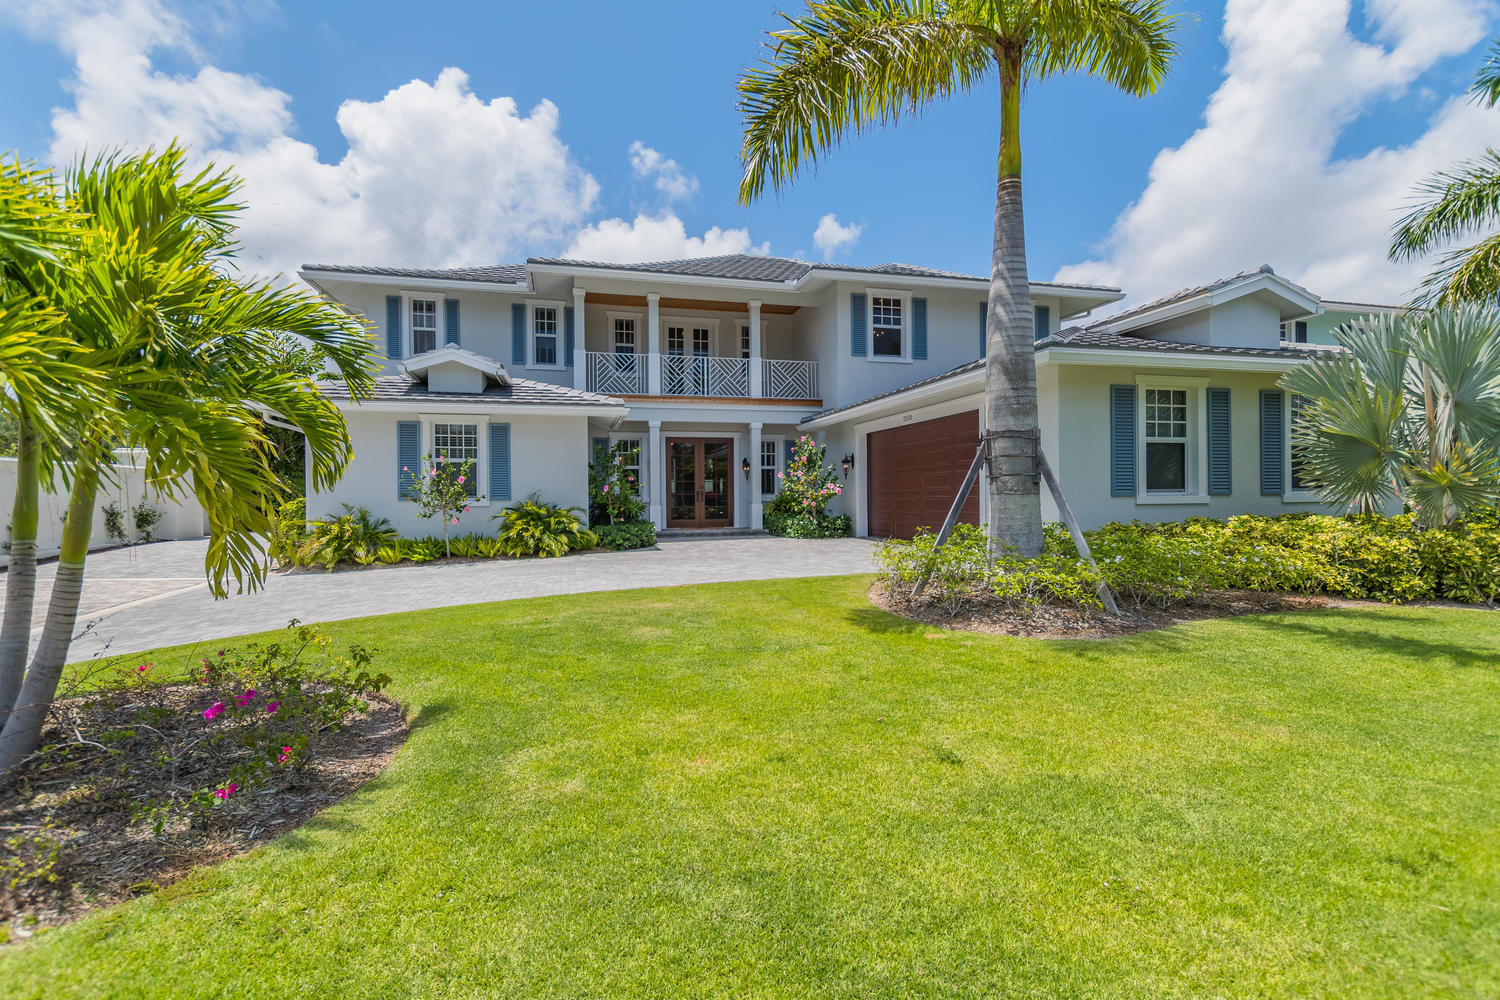 2520 Estates Drive 3, North Palm Beach, Florida 33410, 5 Bedrooms Bedrooms, ,5.1 BathroomsBathrooms,A,Single family,Estates,RX-10507284